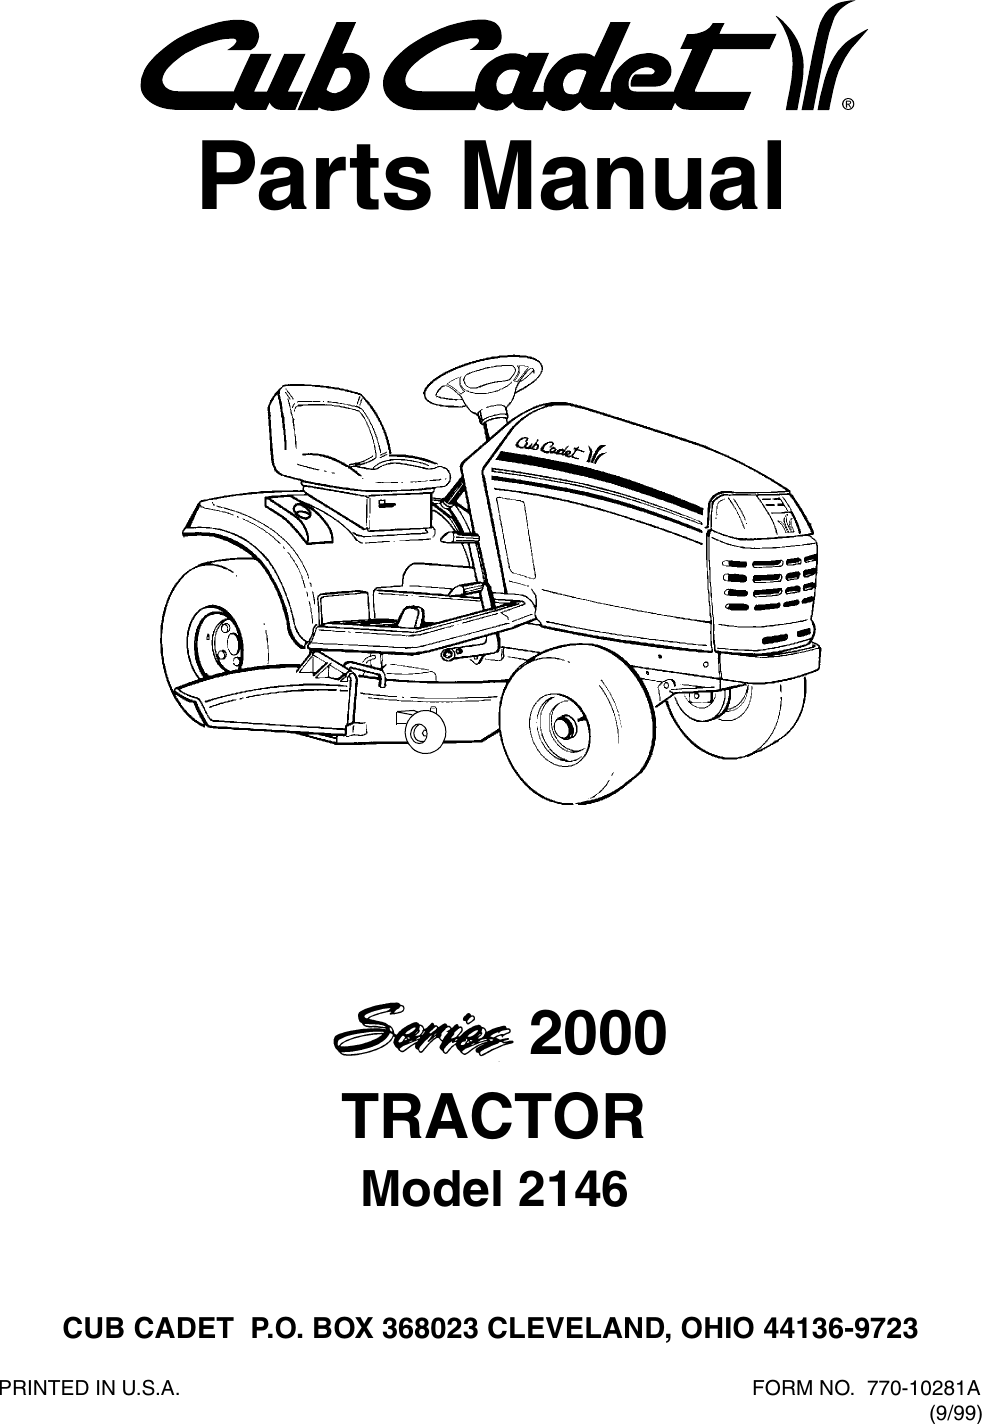 Cub Cadet 2146 Parts Manual Manualslib Makes It Easy To Find Manuals Wiring Diagram Online